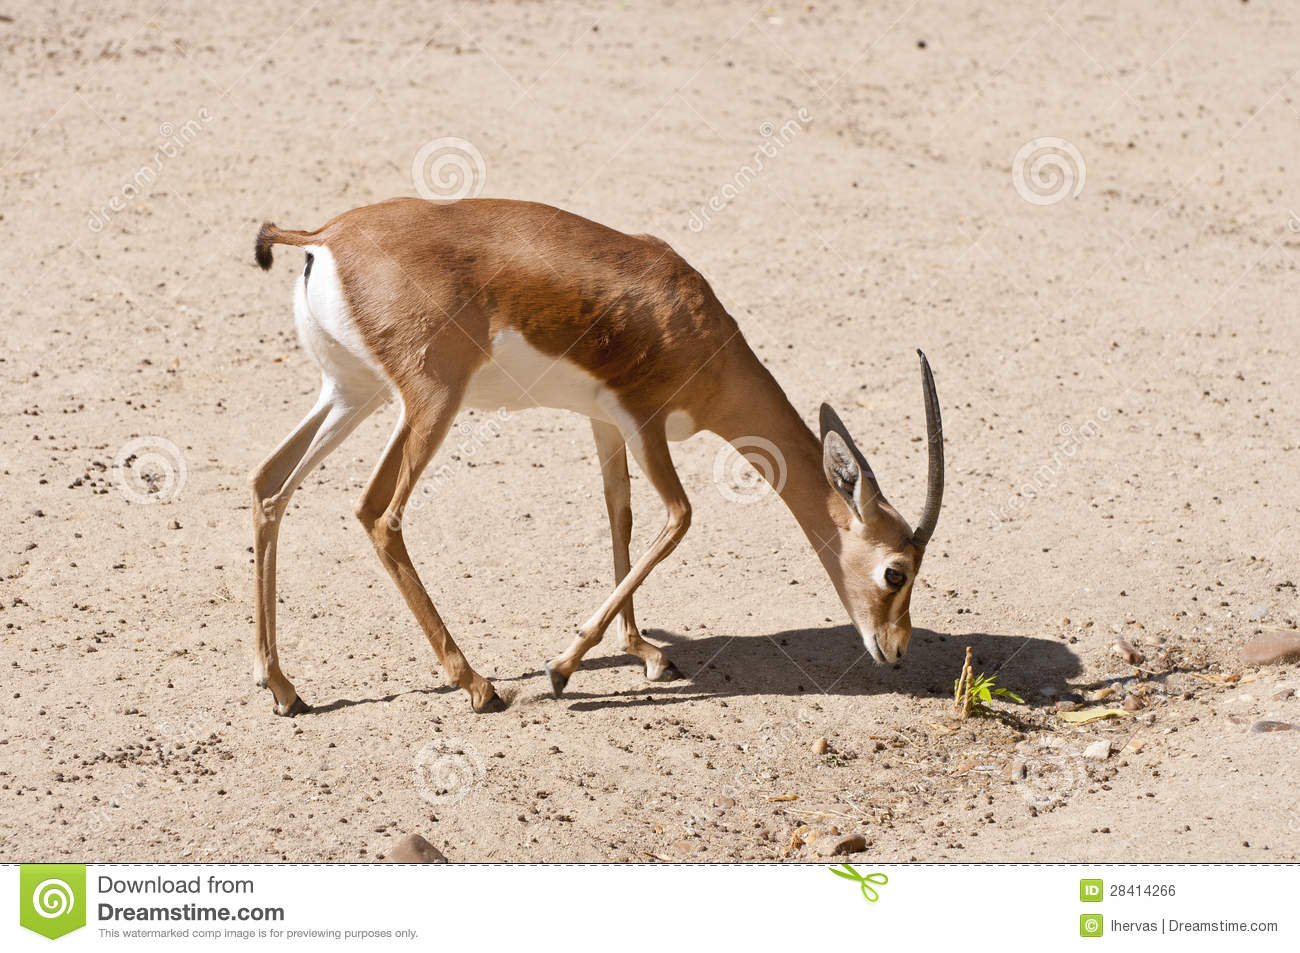 Gazelle - the animal of the steppes and deserts 23